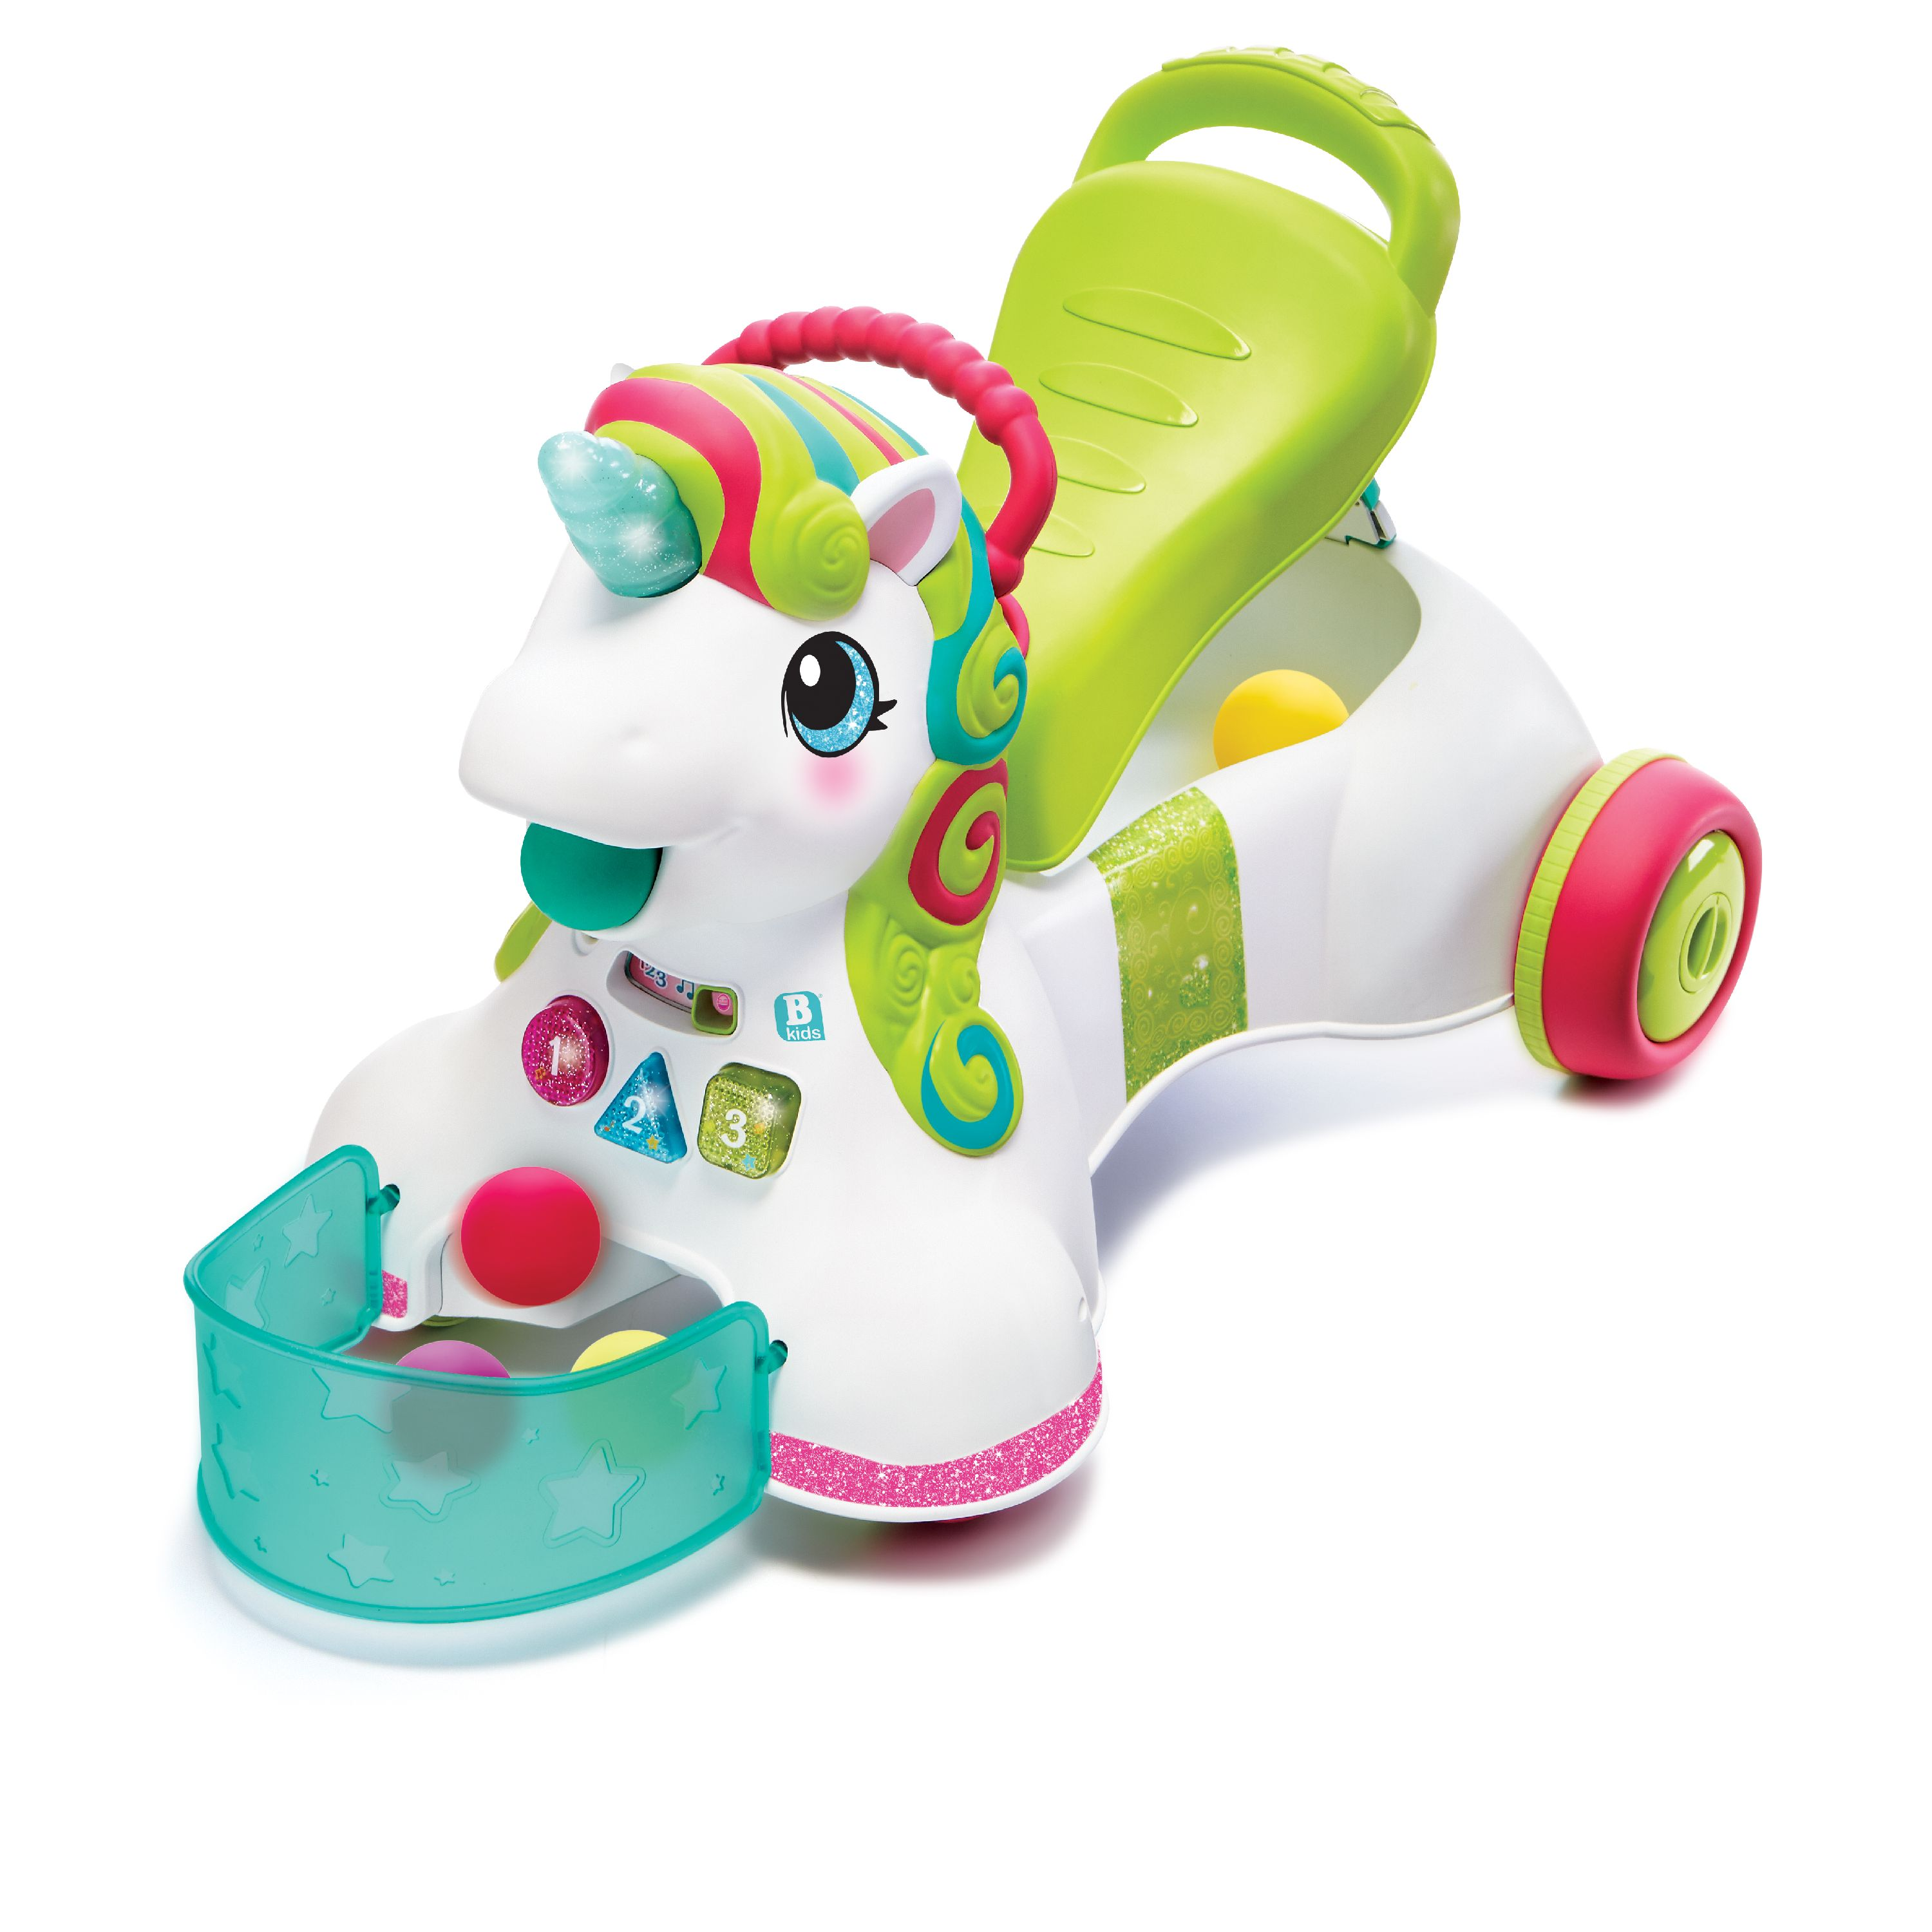 Smilin' Shimmer 3-in-1 Sit, Walk & Ride Unicorn